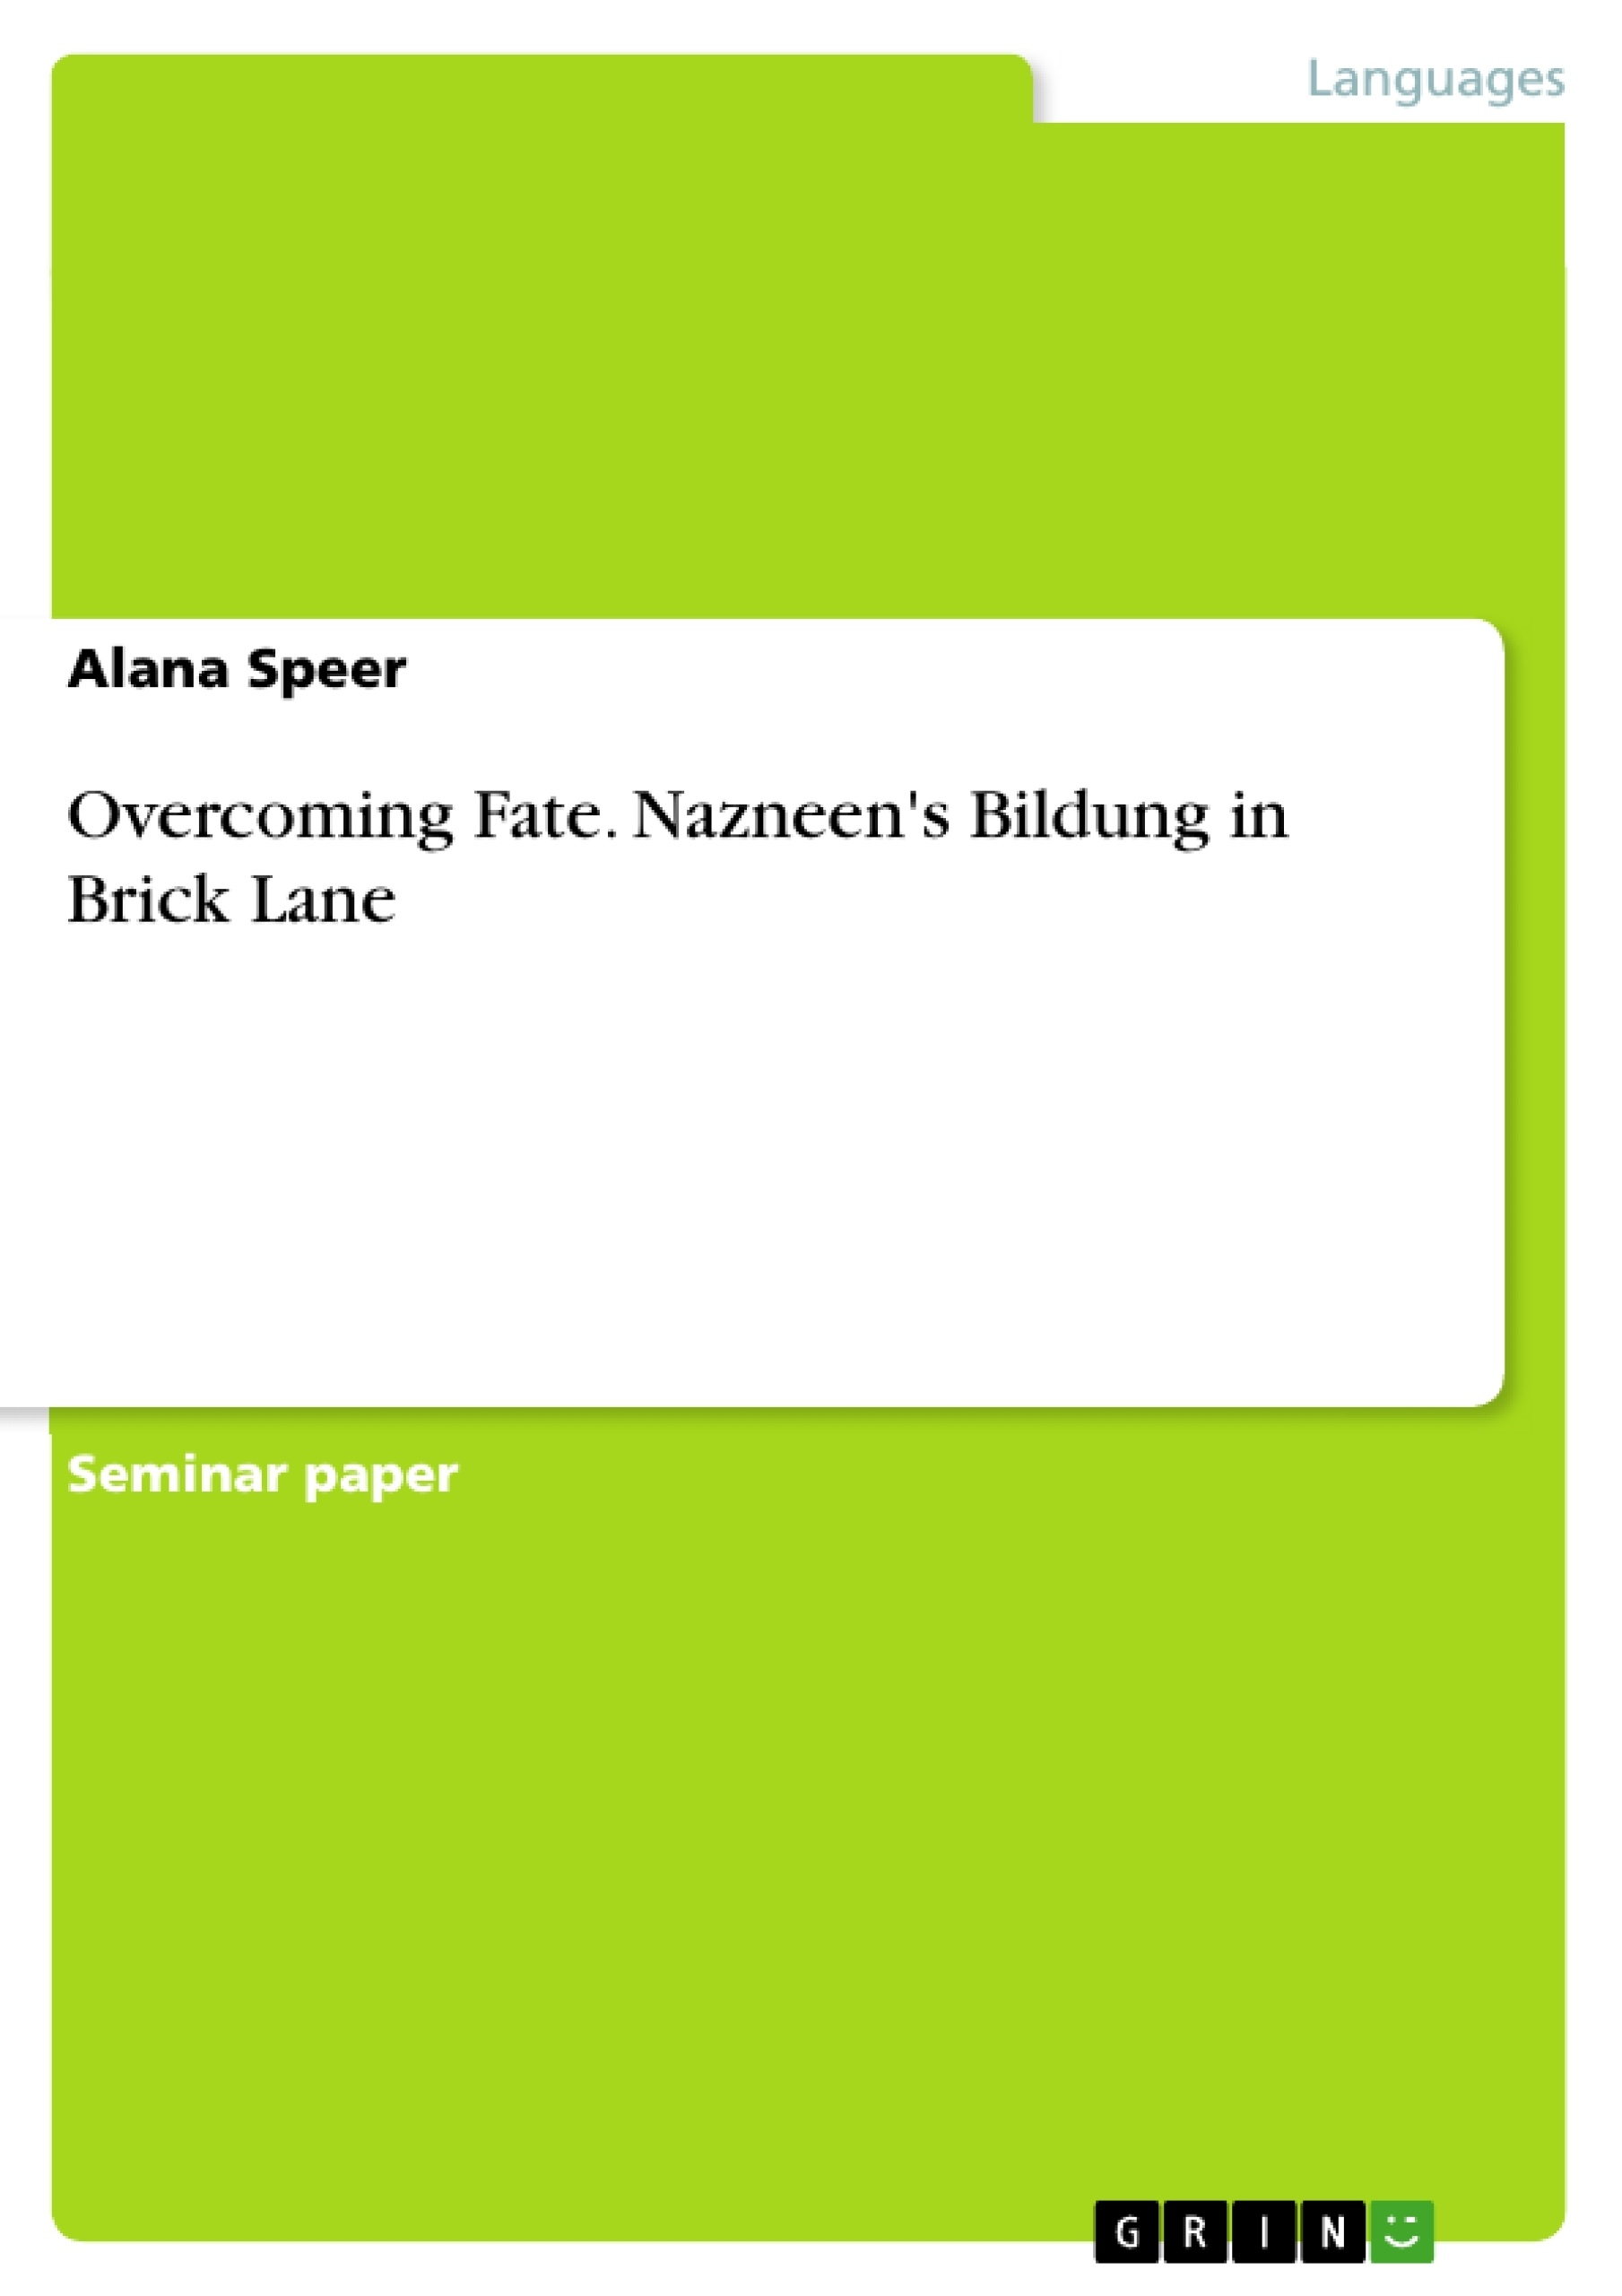 Title: Overcoming Fate. Nazneen's Bildung in Brick Lane